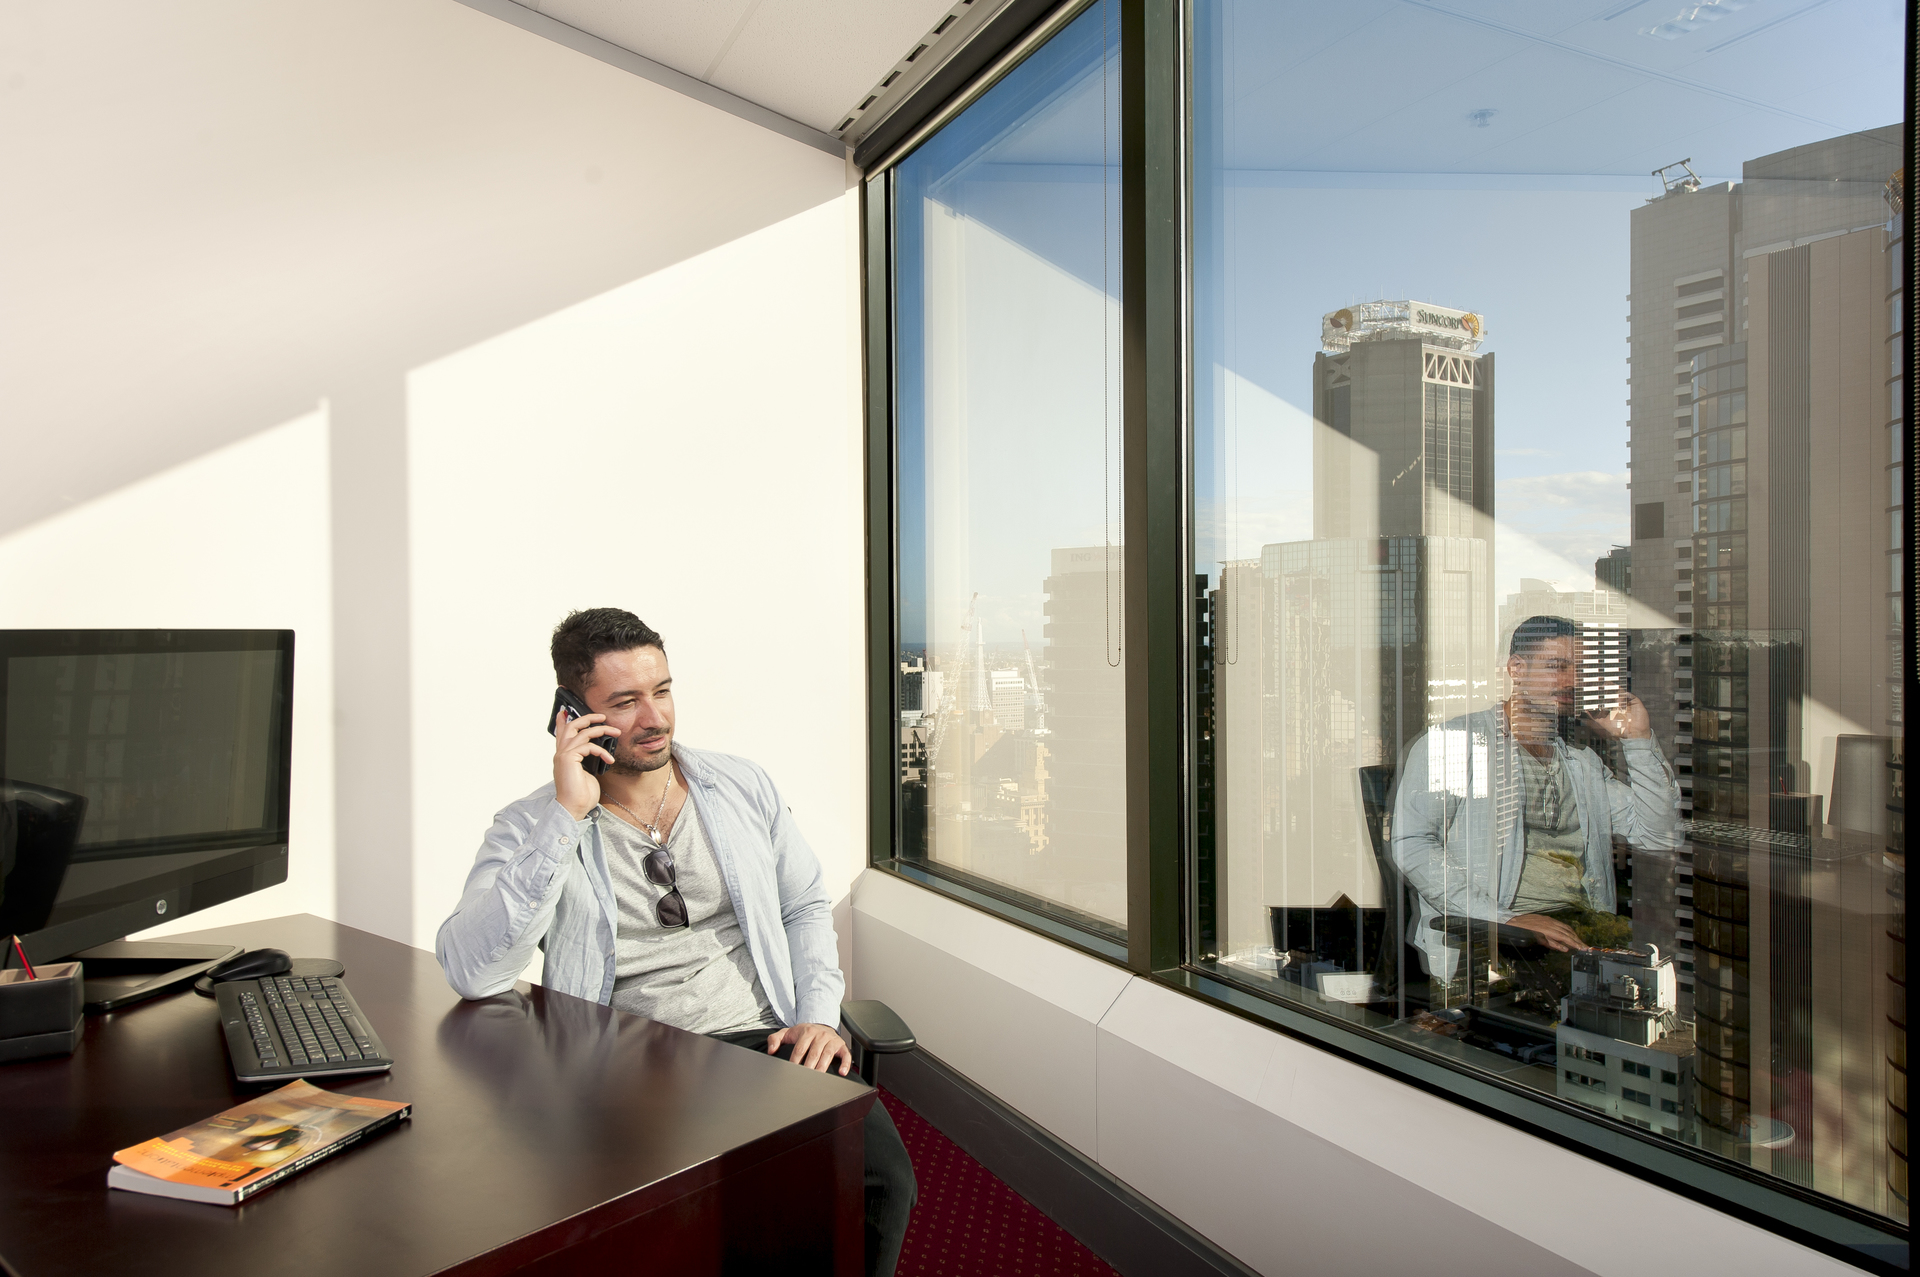 Luxury workspaces at Gateway, private 6-person office with views and access to coworking breakout areas